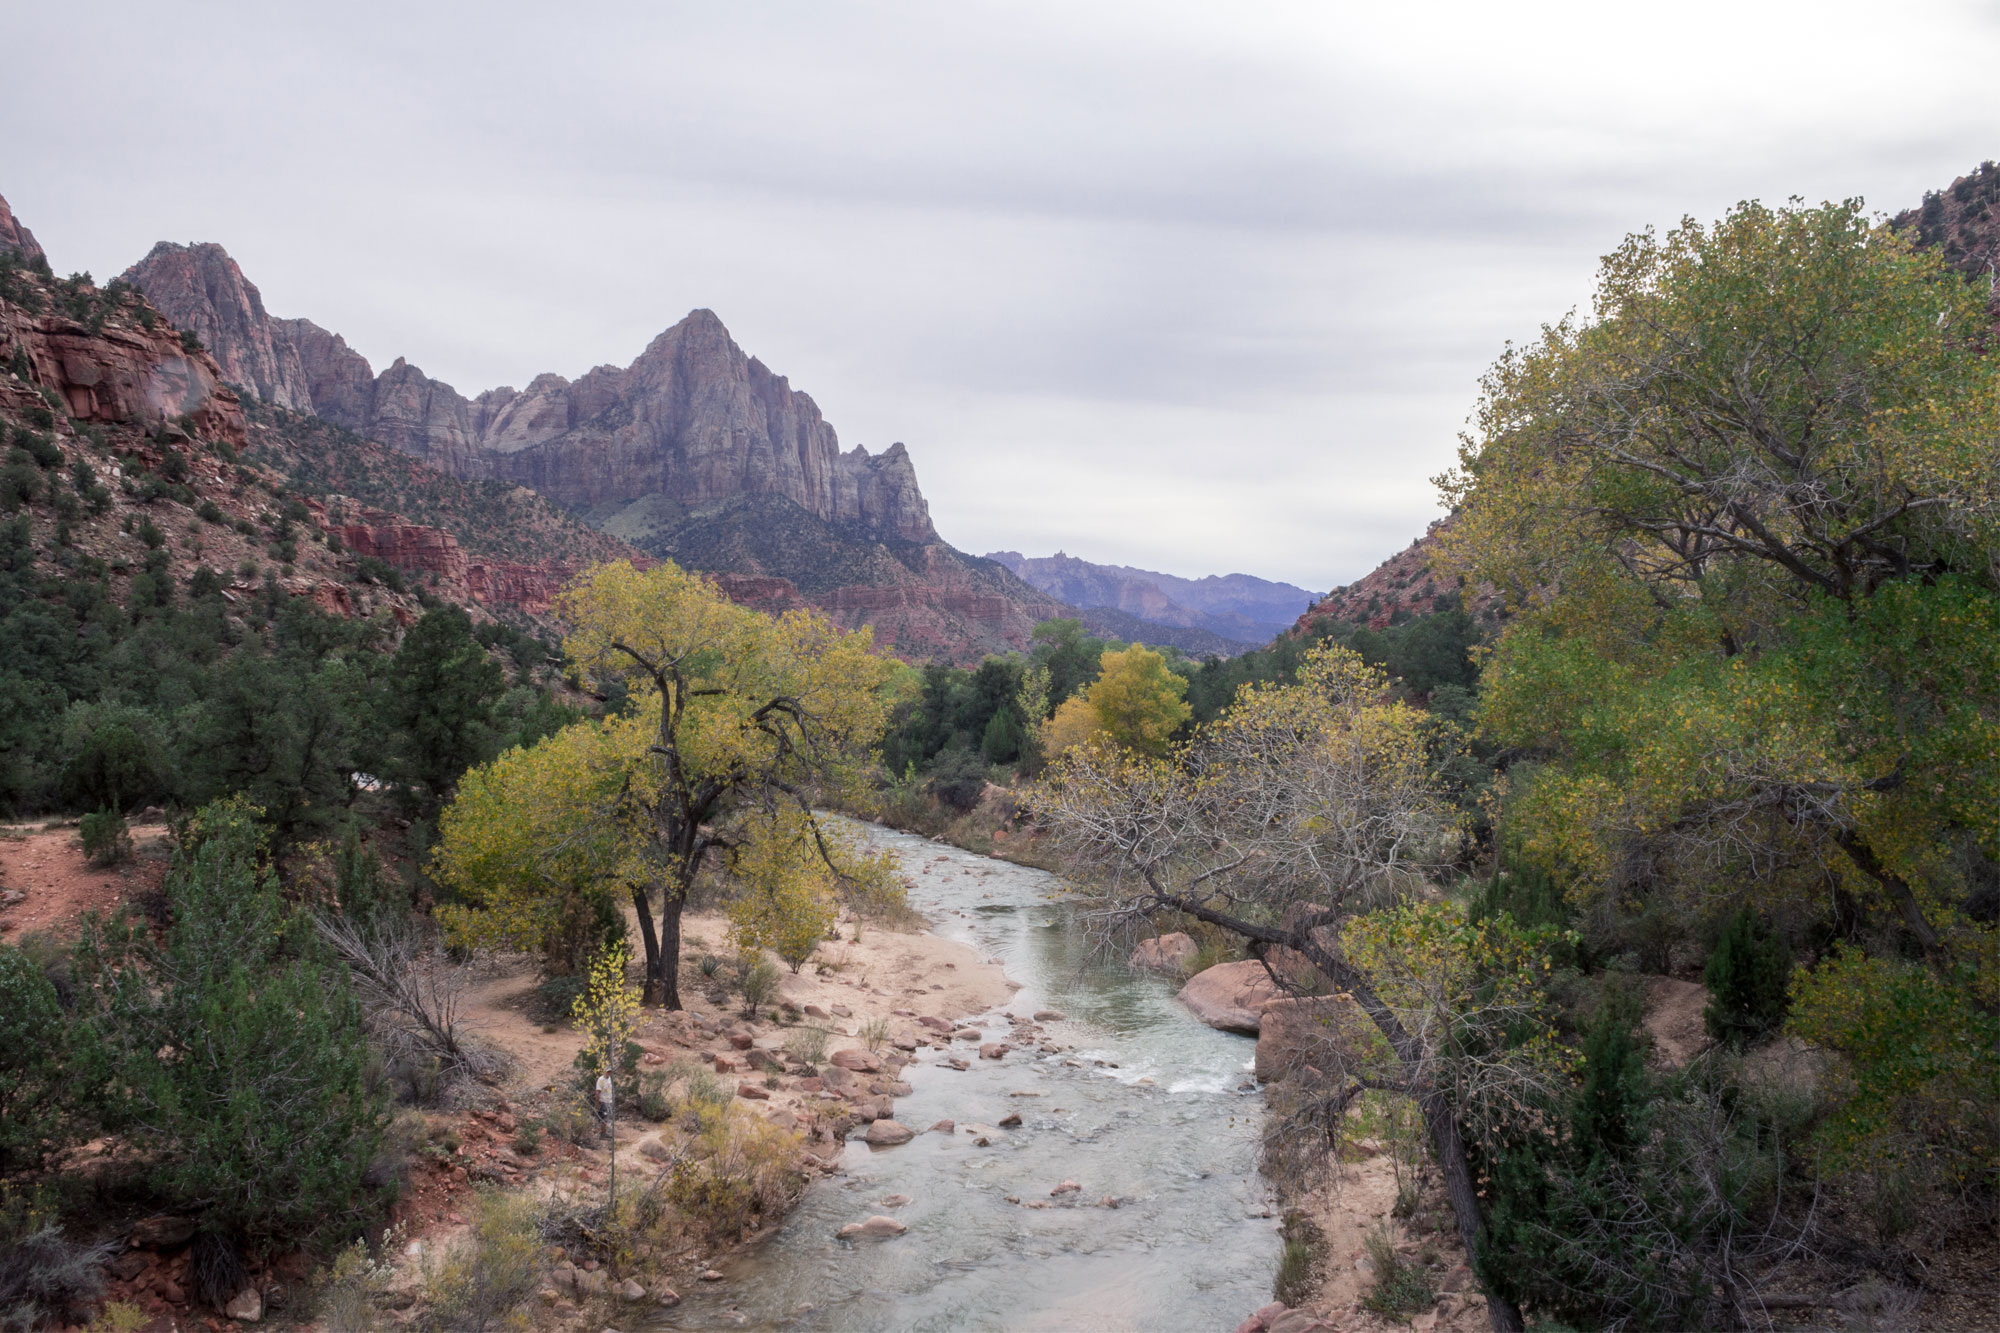 Virgin River from the bridge in Zion National Park